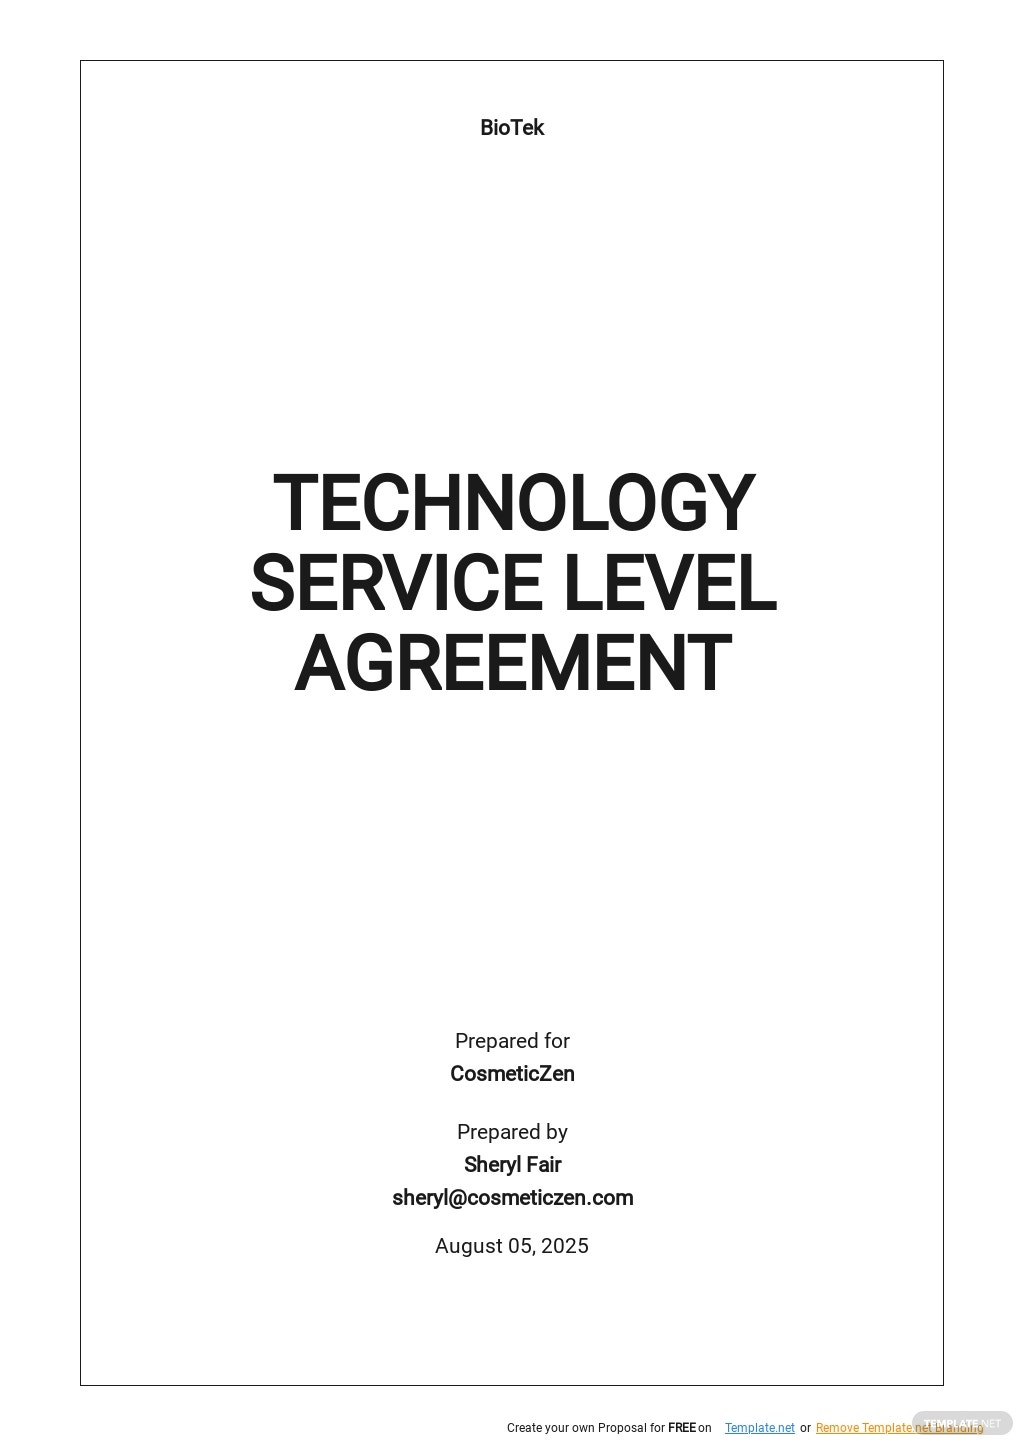 Free Technology Service Level Agreement Template.jpe